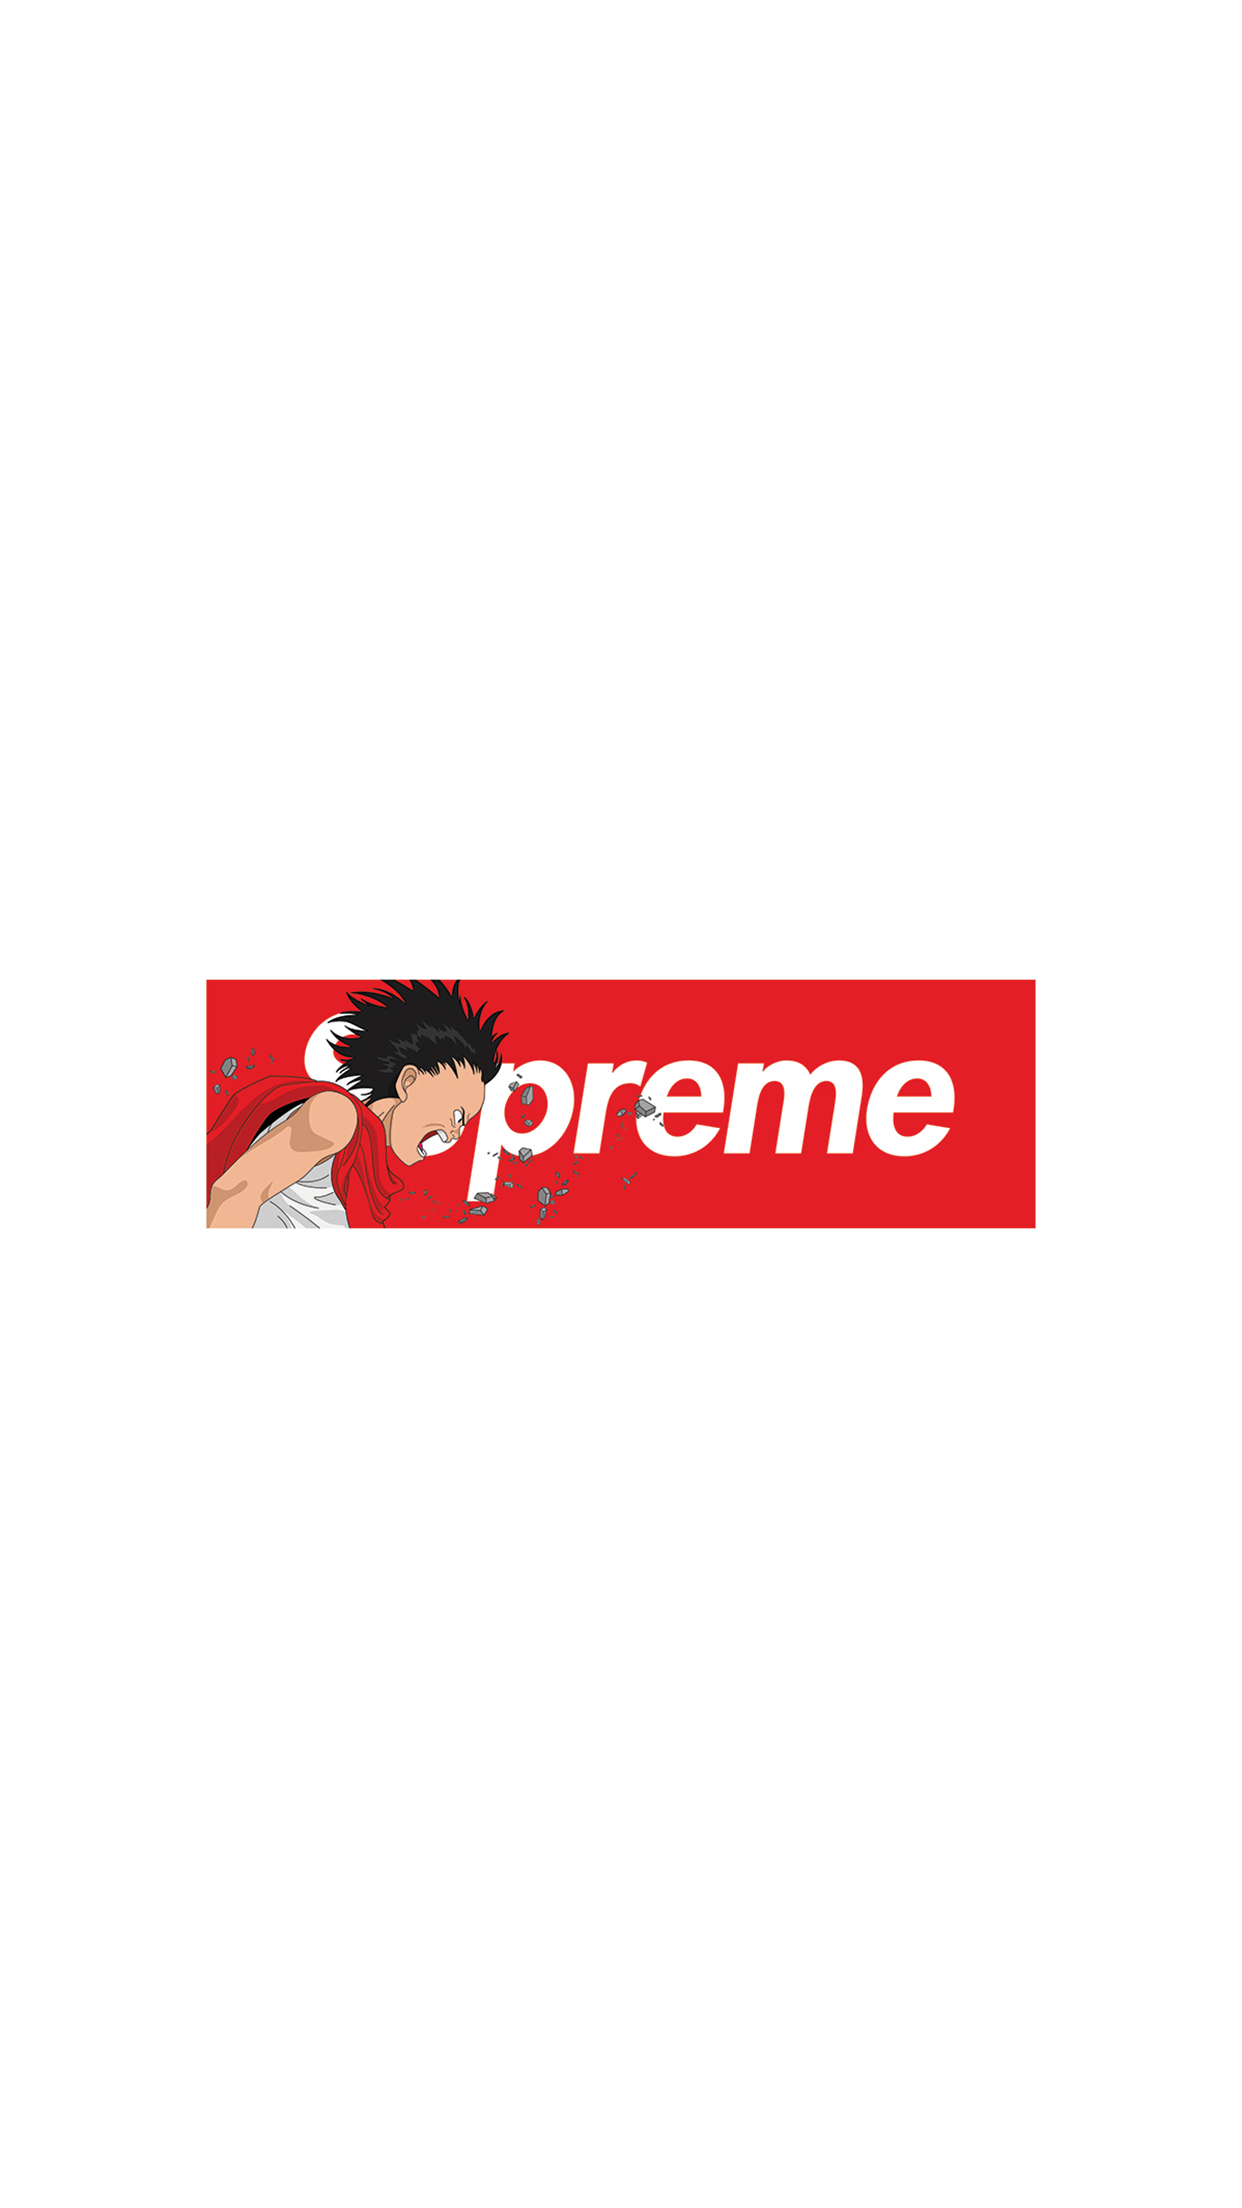 Supreme Wallpaper Iphone 7 109 images in Collection Page 1 1242x2208